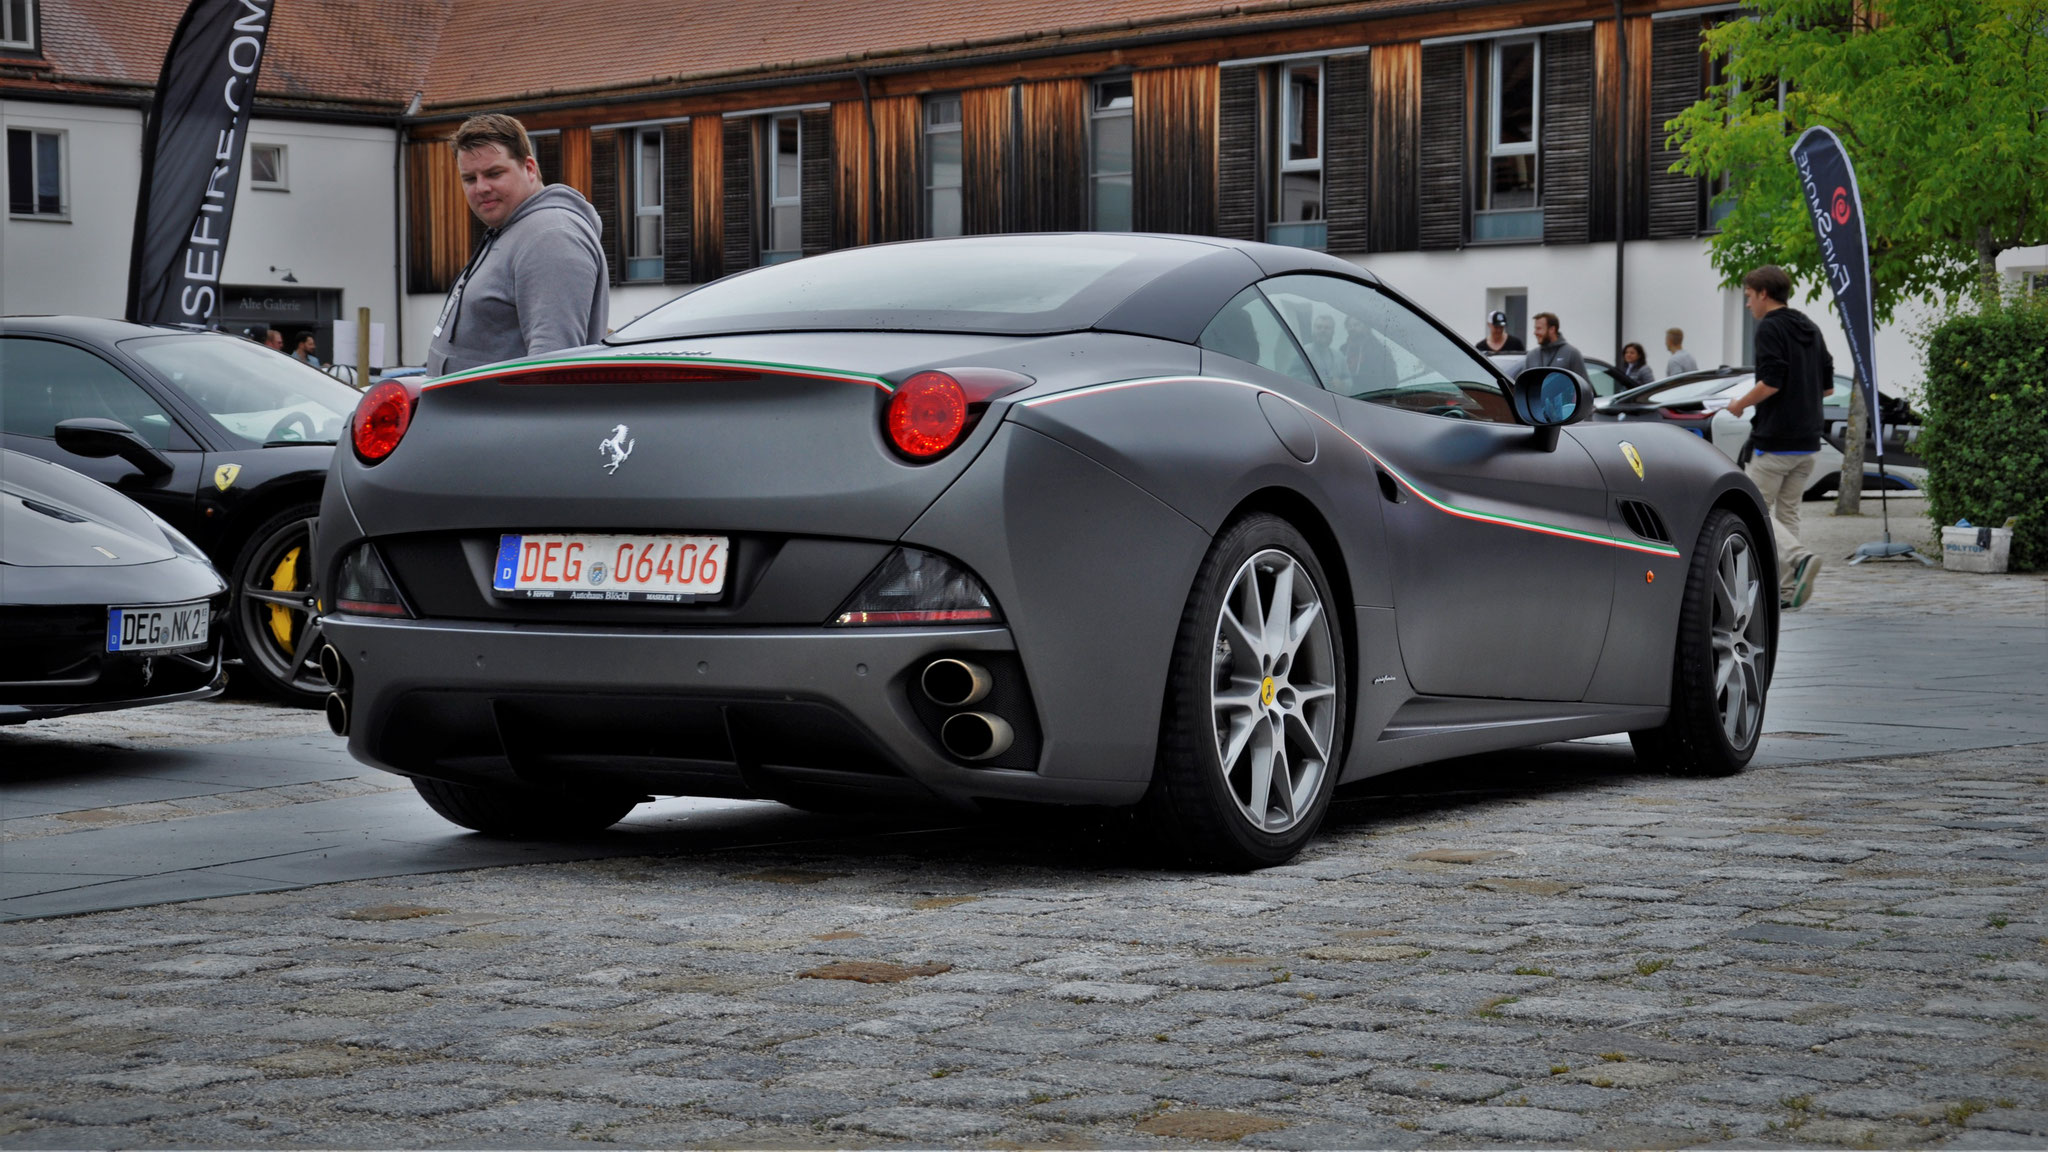 Ferrari California - DEG-06406